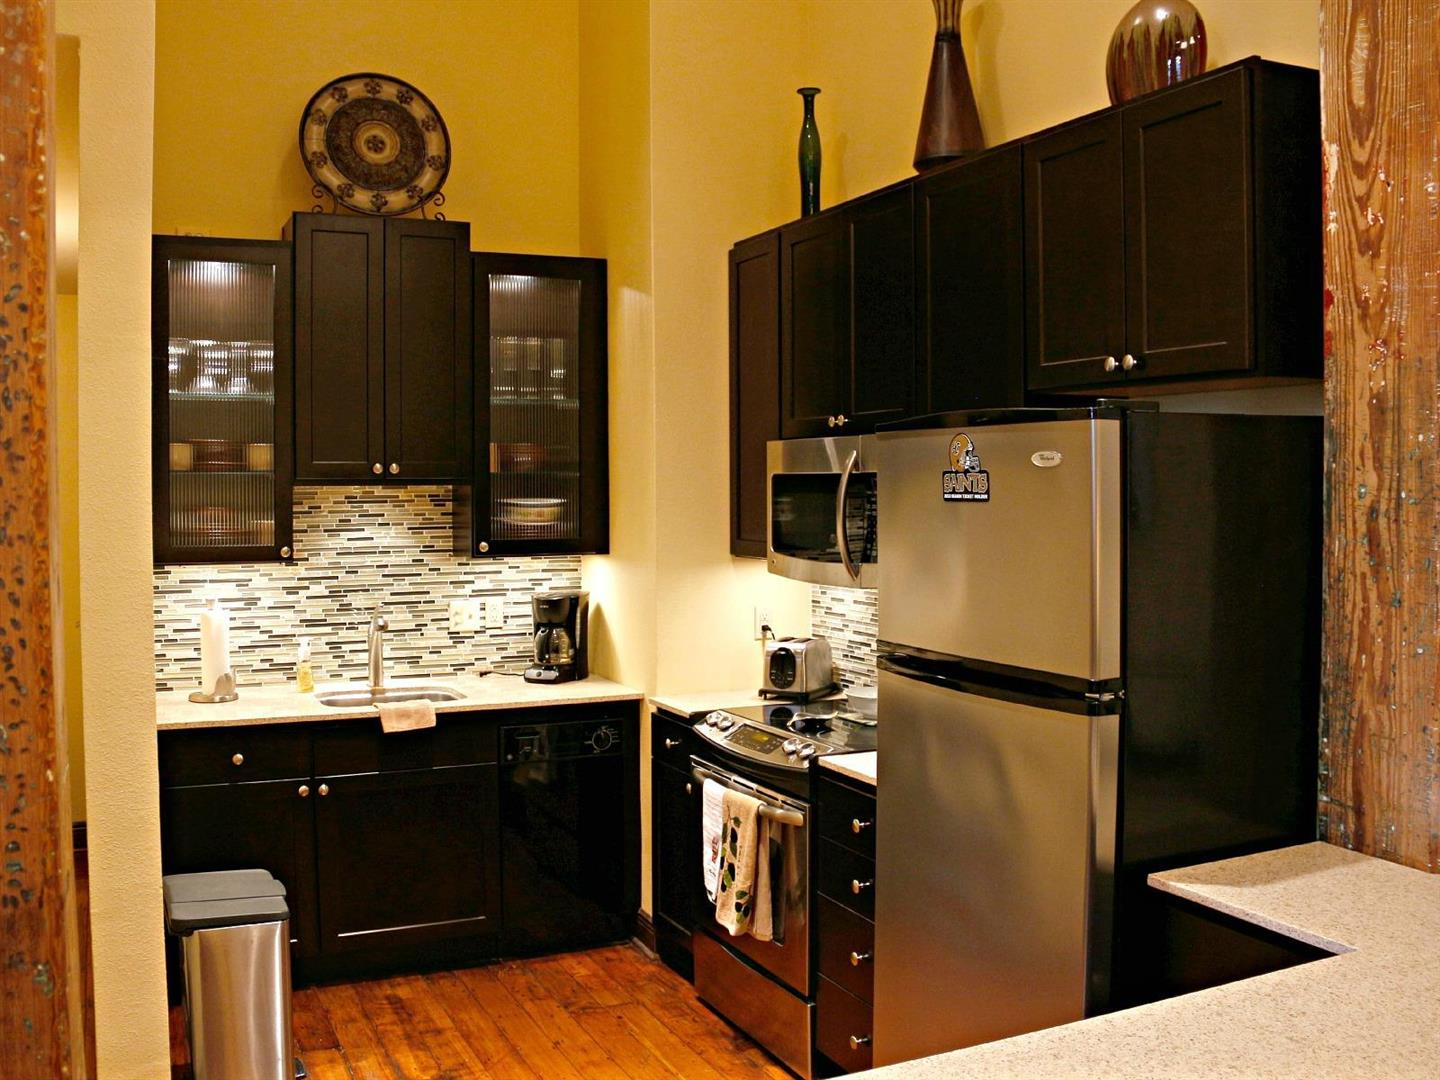 333JuliaStreet226,Kitchen,JuliaPlaceCondos.jpg